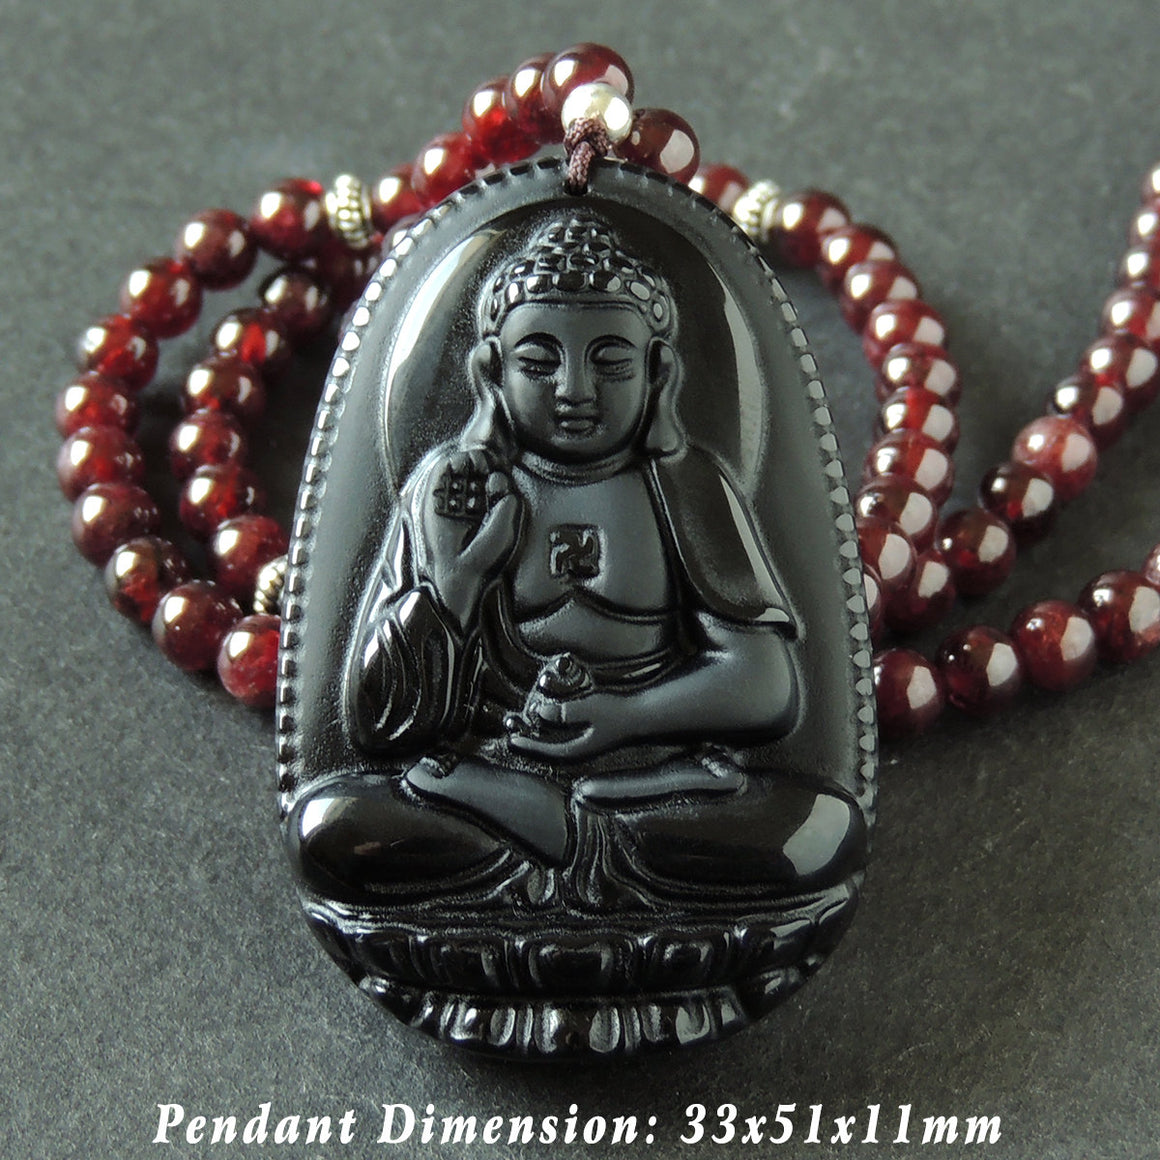 5.5mm Garnet & Black Obsidian Guanyin Buddha Pendant Adjustable Braided Necklace with S925 Sterling Silver Spacer Beads - Handmade by Gem & Silver NK168